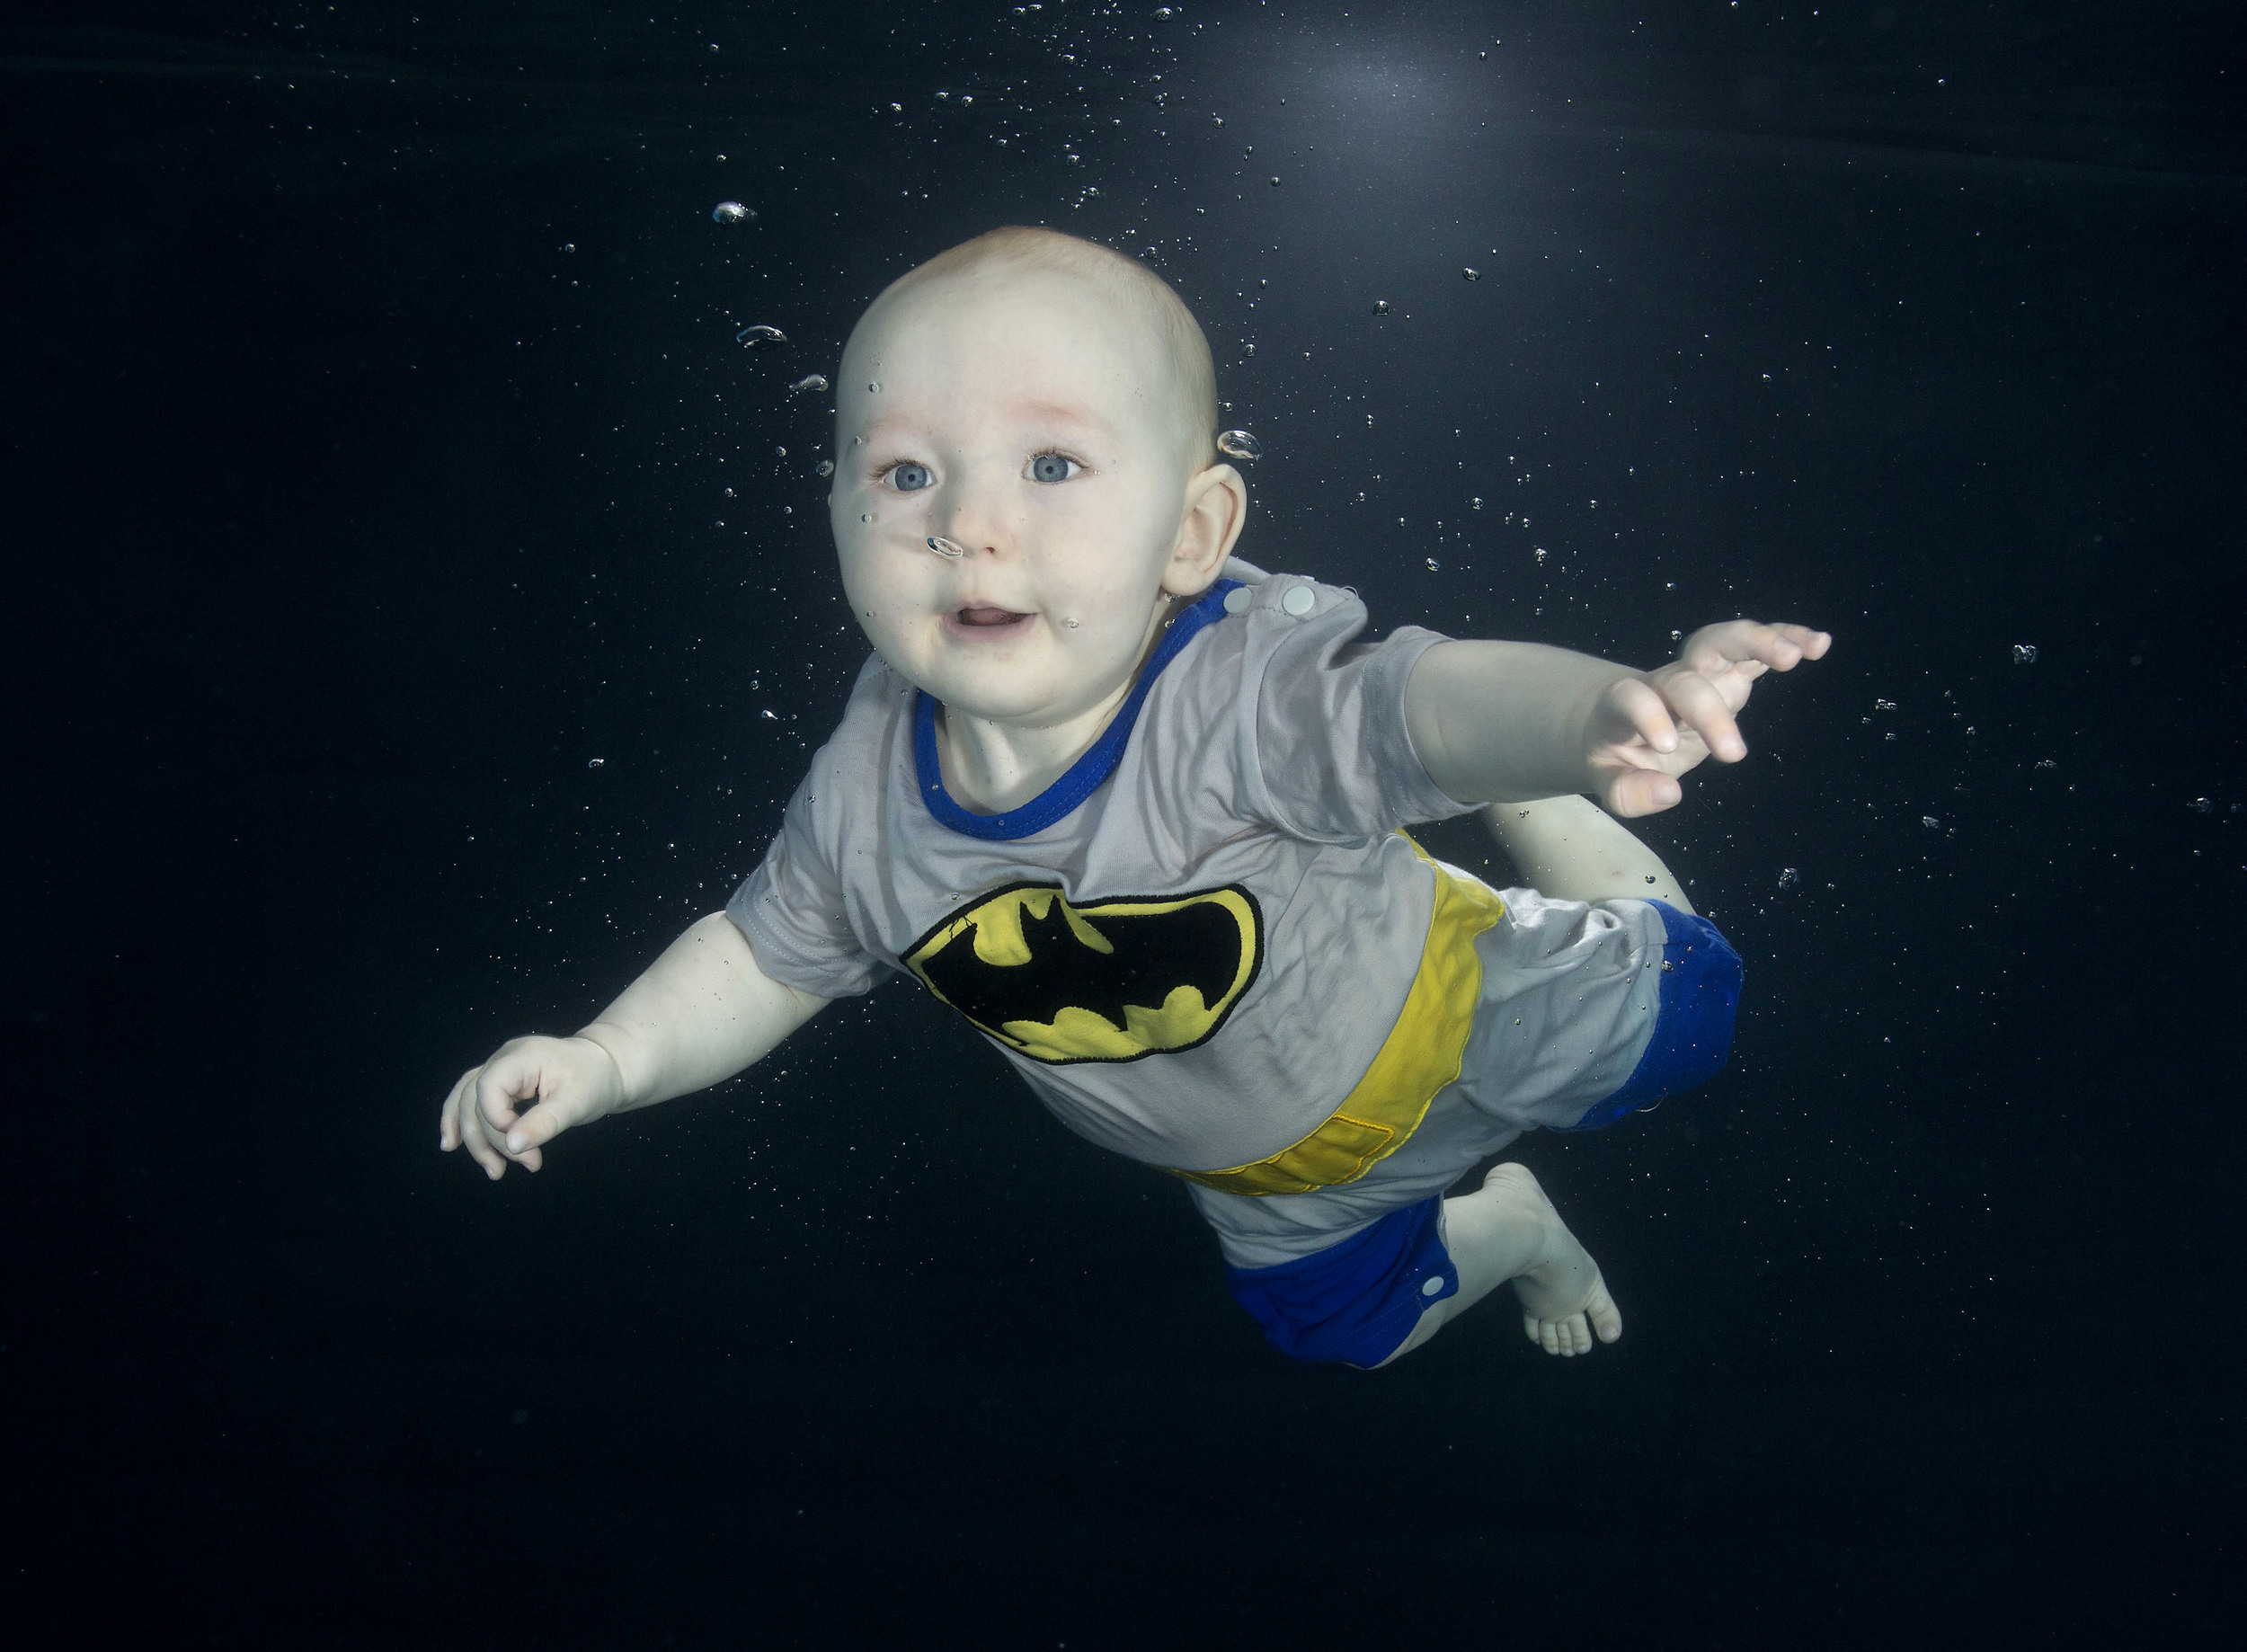 Batman baby underwater